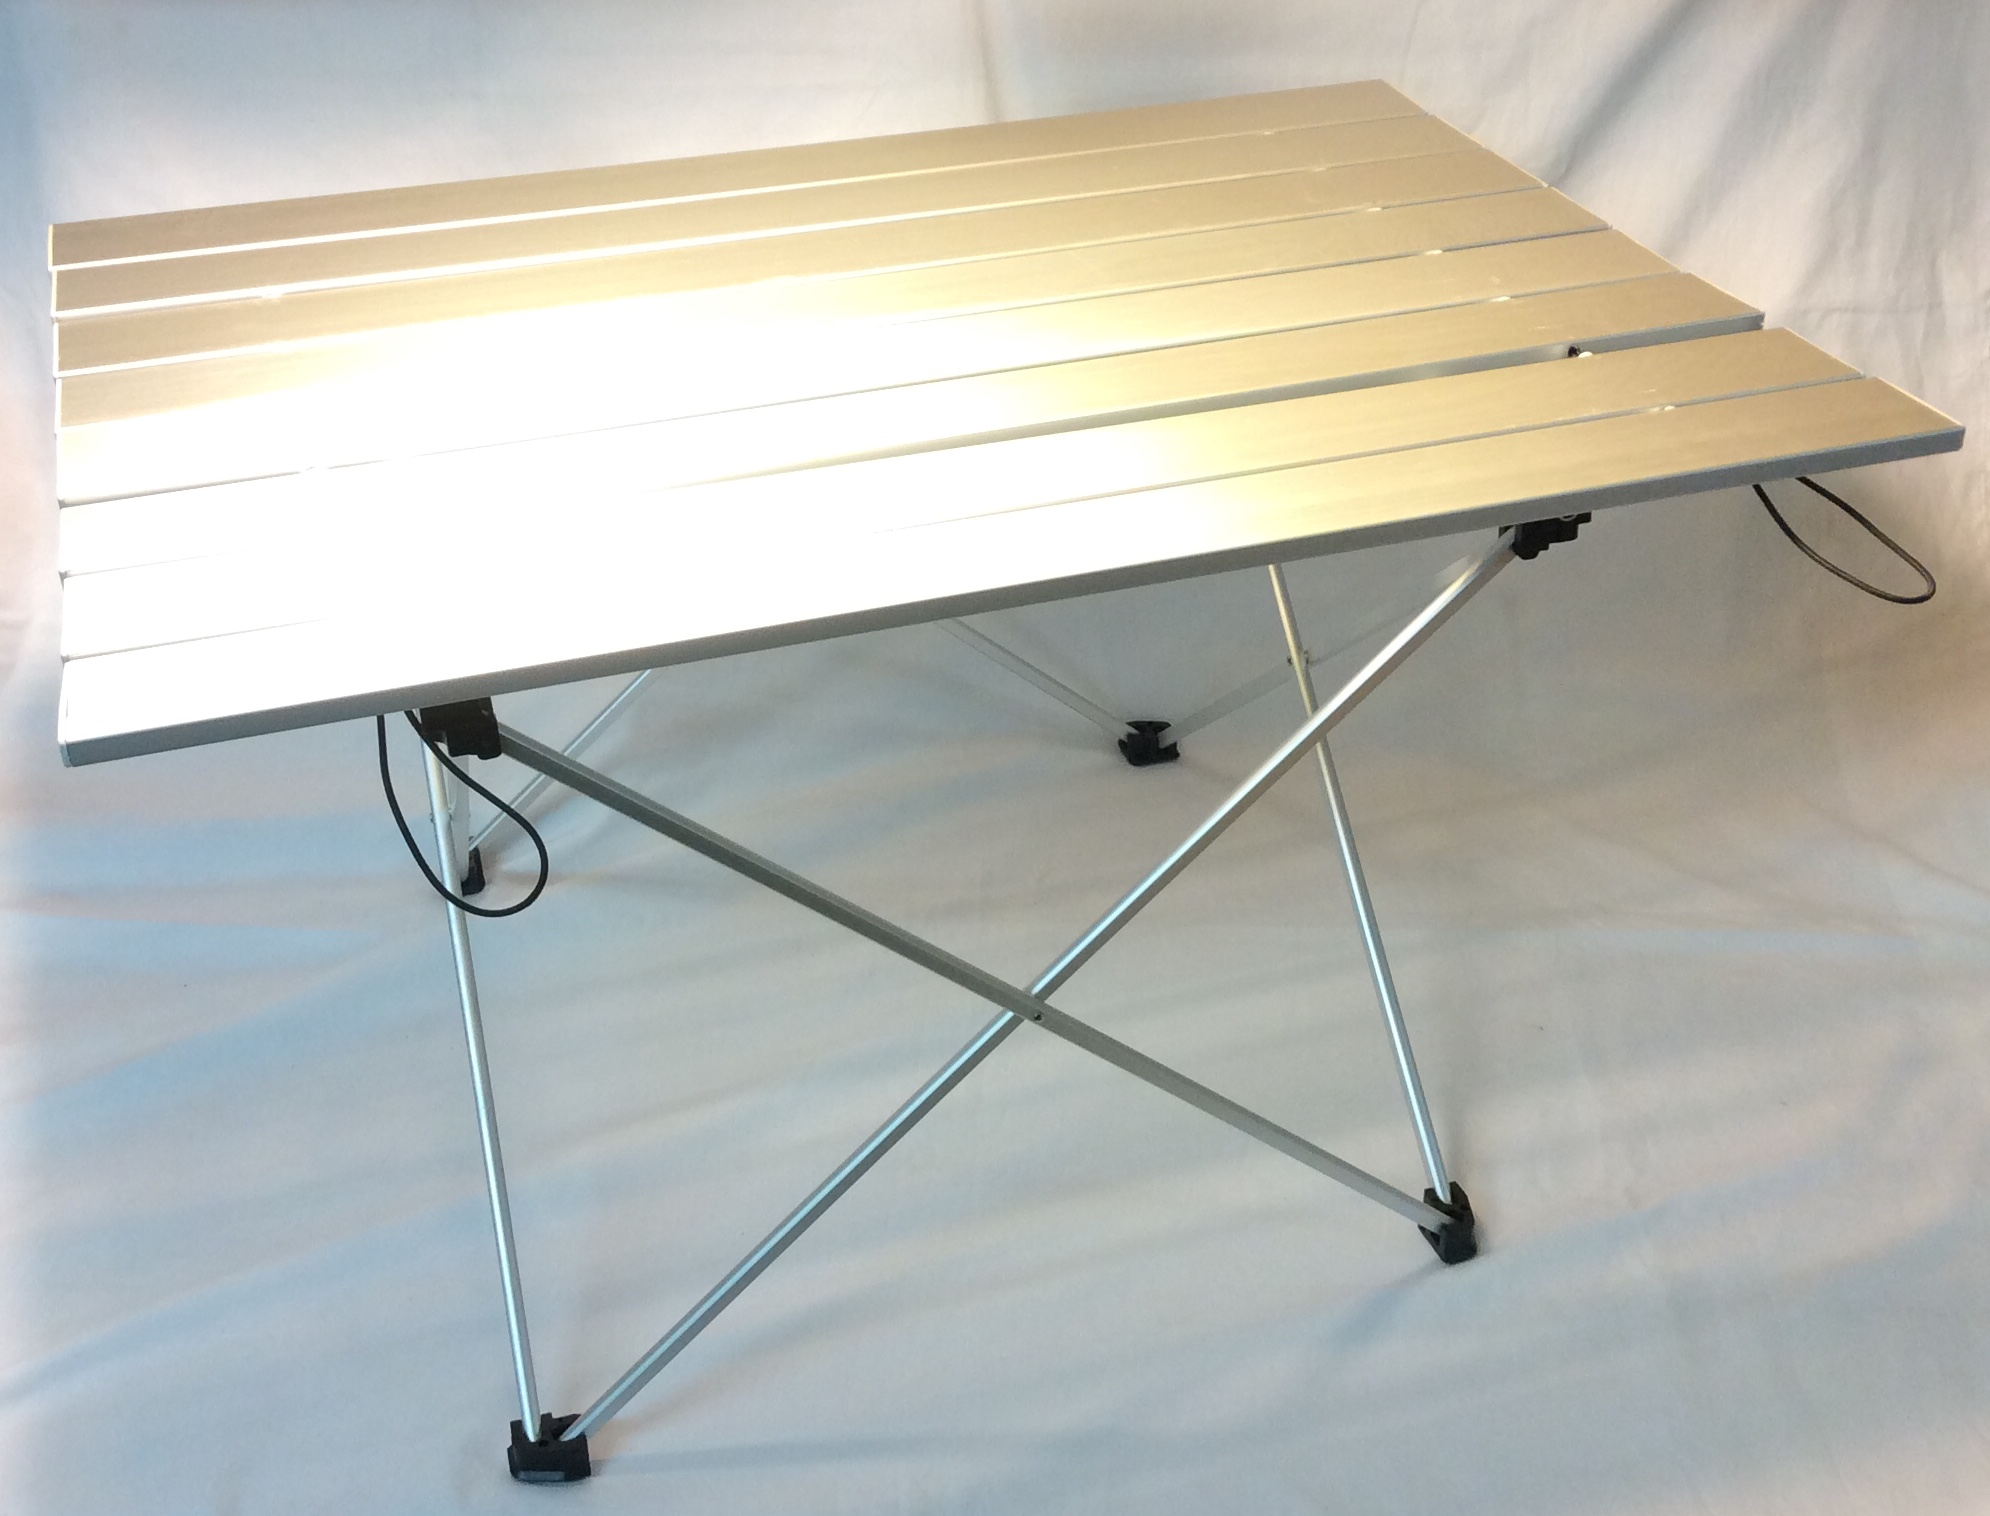 Collapsible metal camping table